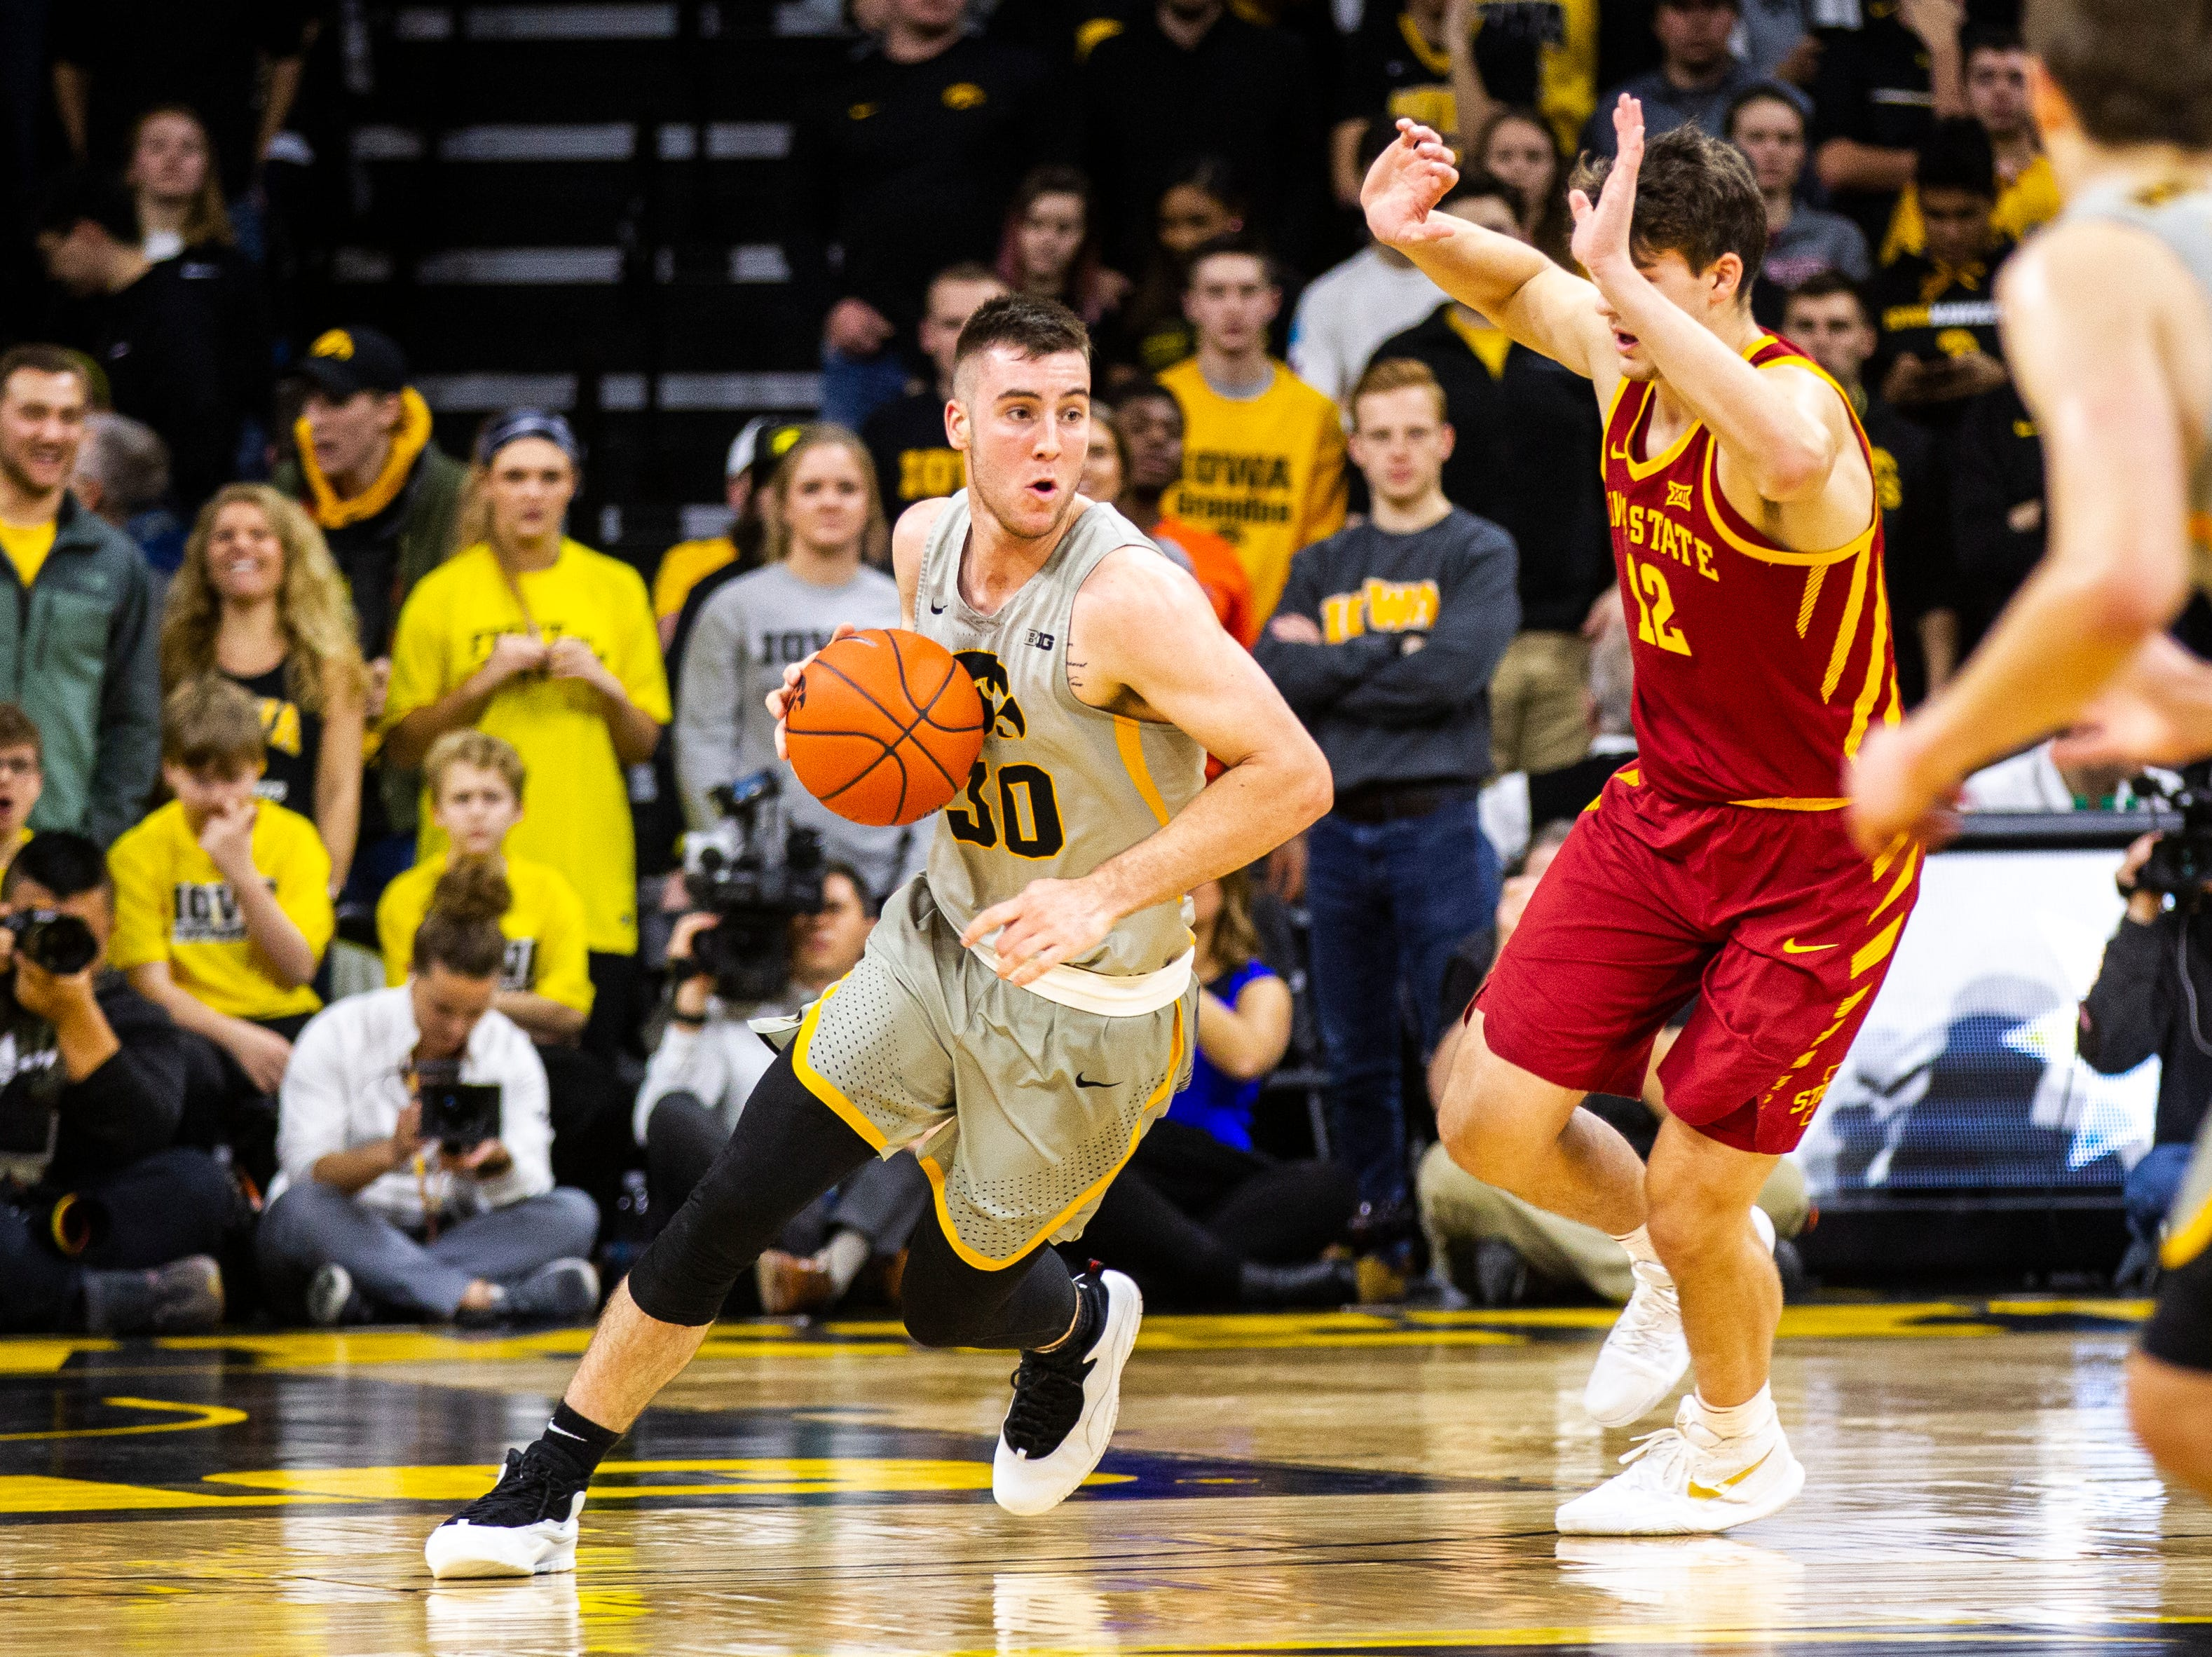 Iowa guard Connor McCaffery (30) takes the ball up court while being defended by Iowa State forward Michael Jacobson (12) during a NCAA Cy-Hawk series men's basketball game on Thursday, Dec. 6, 2018, at Carver-Hawkeye Arena in Iowa City.